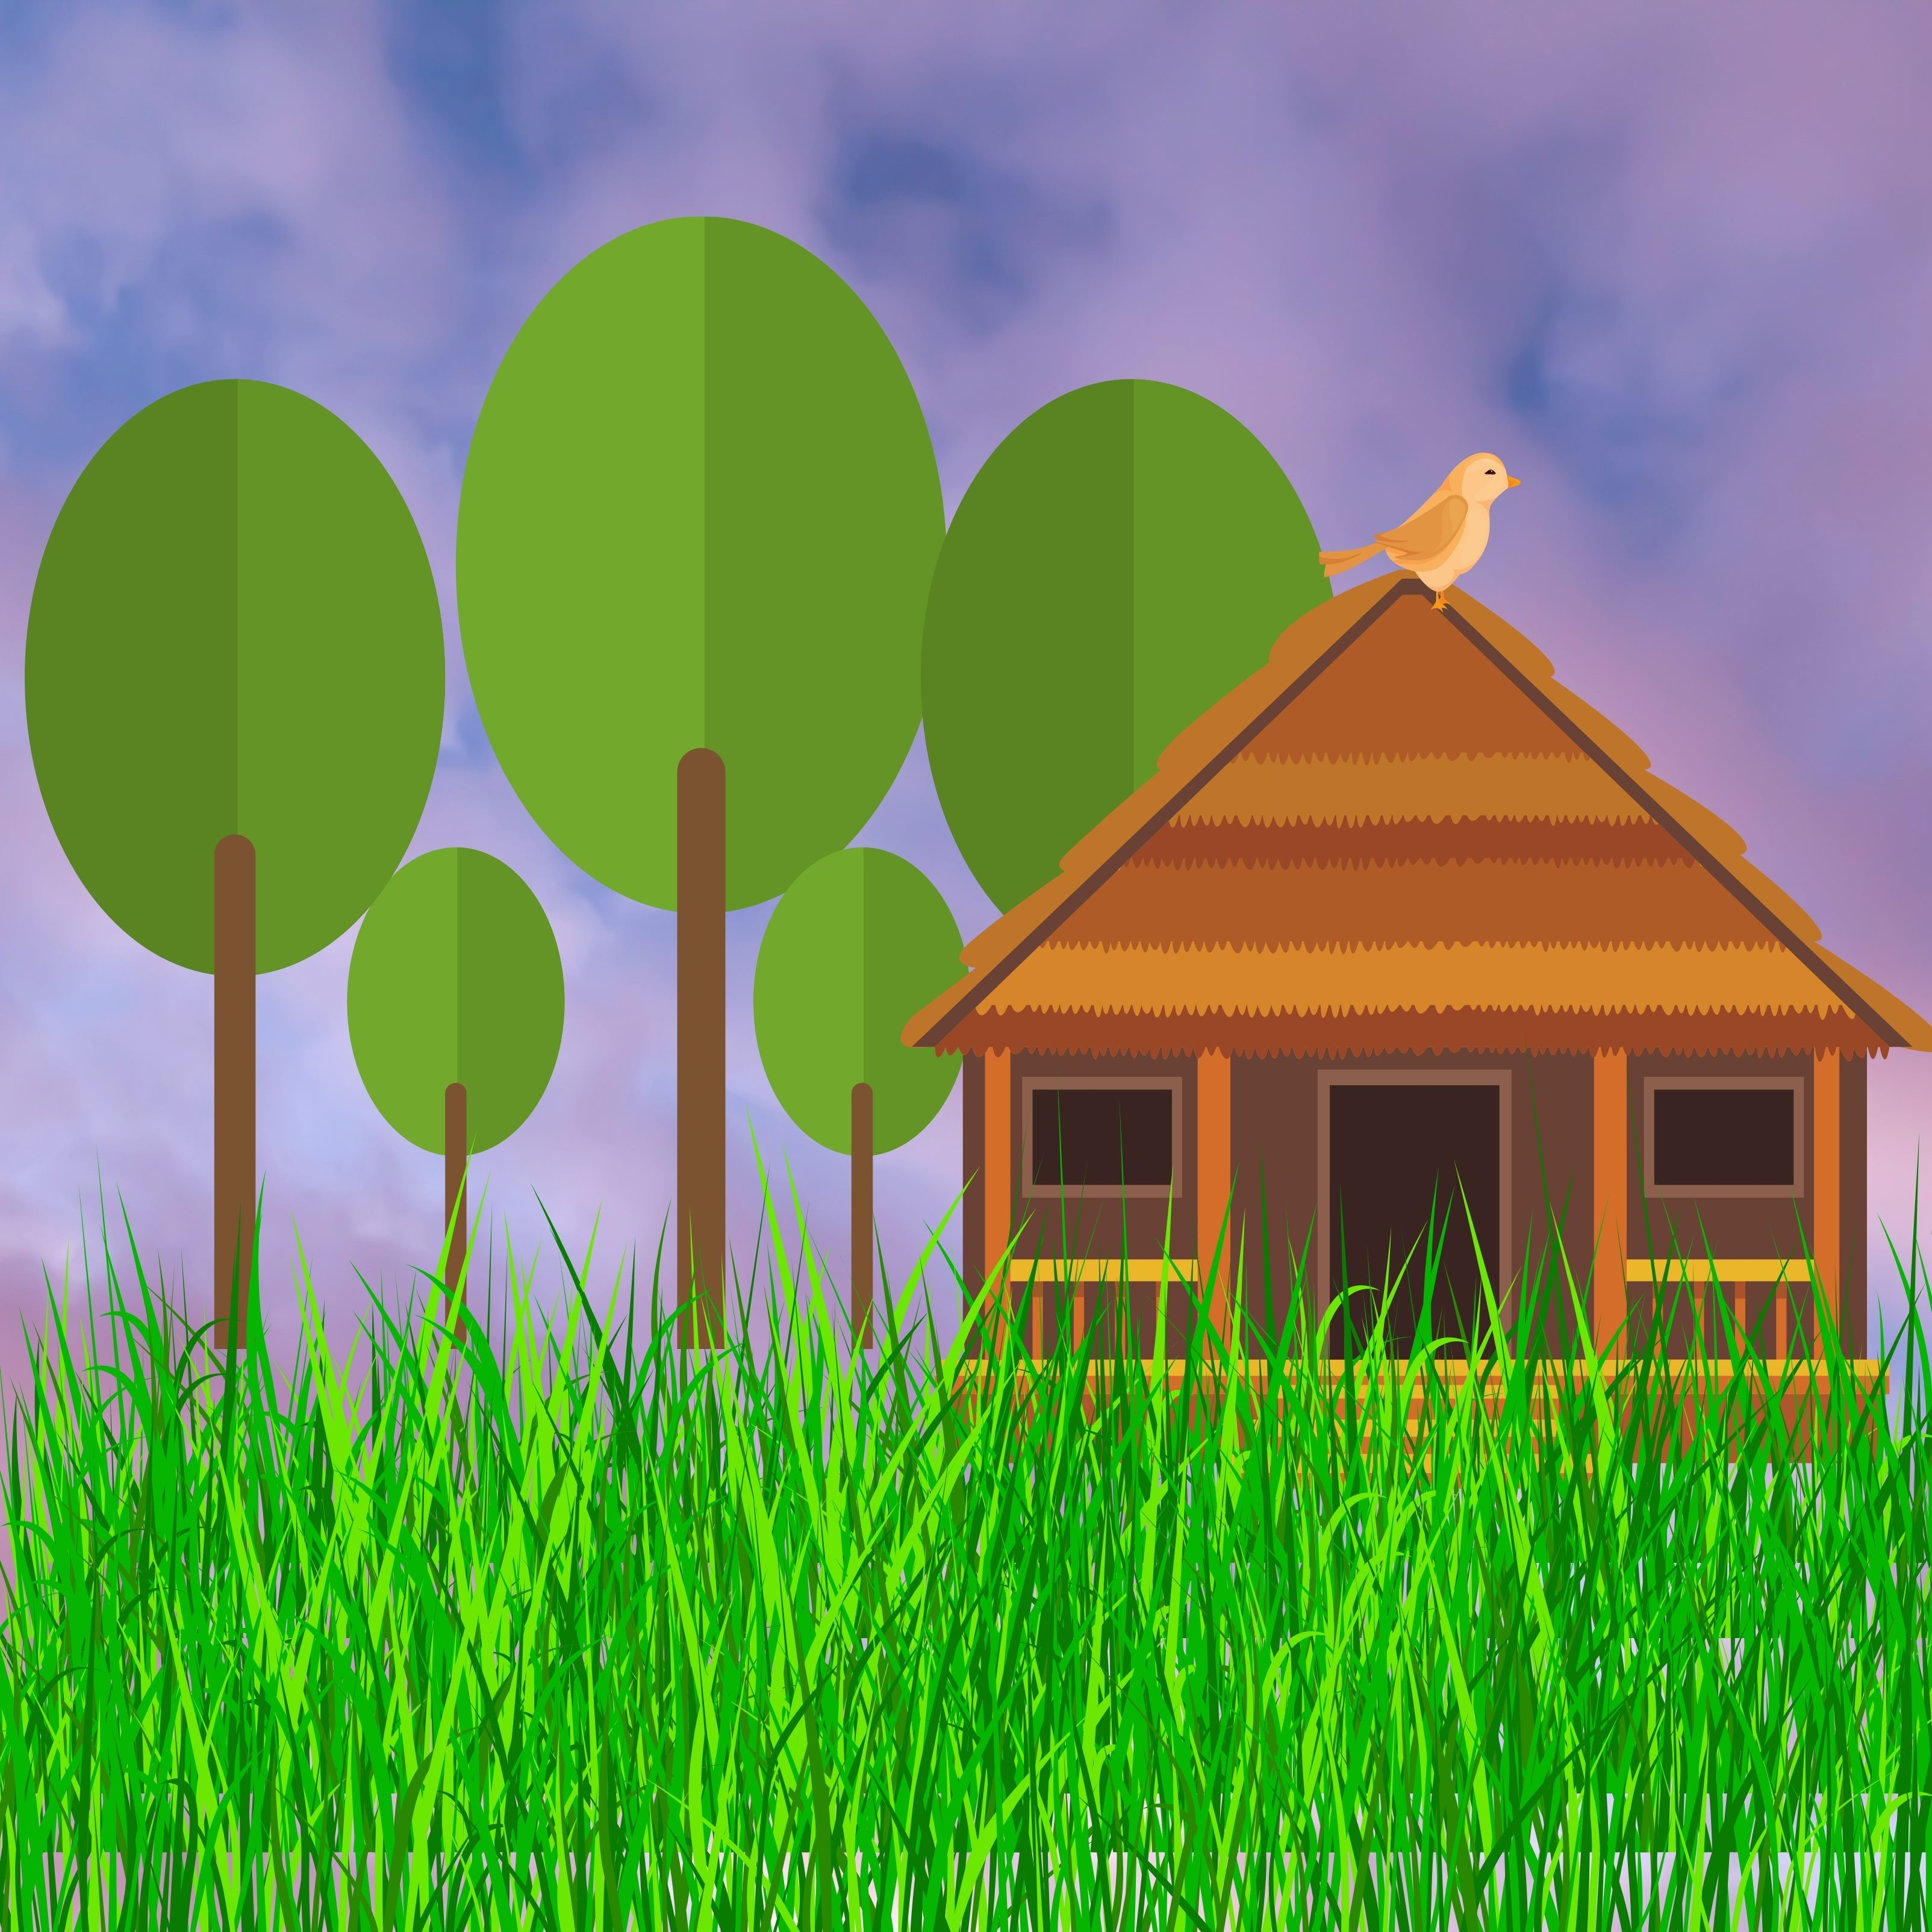 Cottage Grass Cloudy iPad Wallpaper